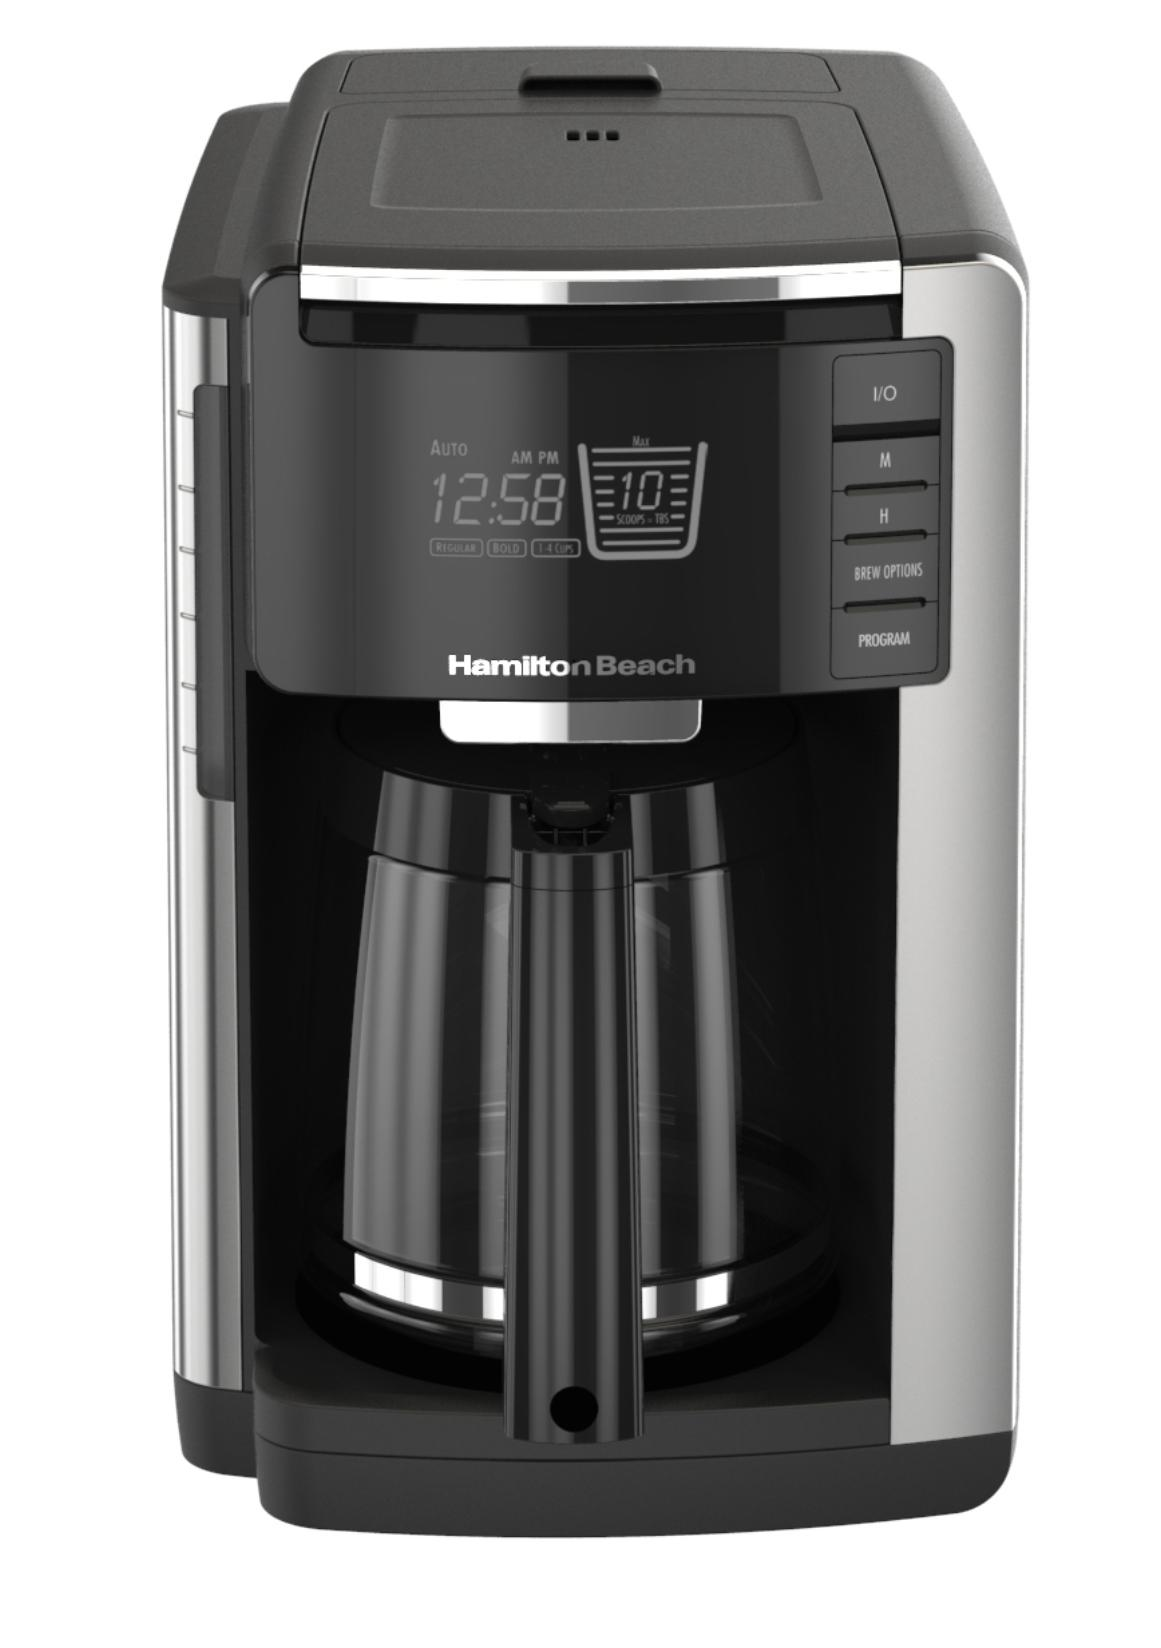 Trucount 12 Cup Coffee Maker From Hamilton Beach Kitchenware News